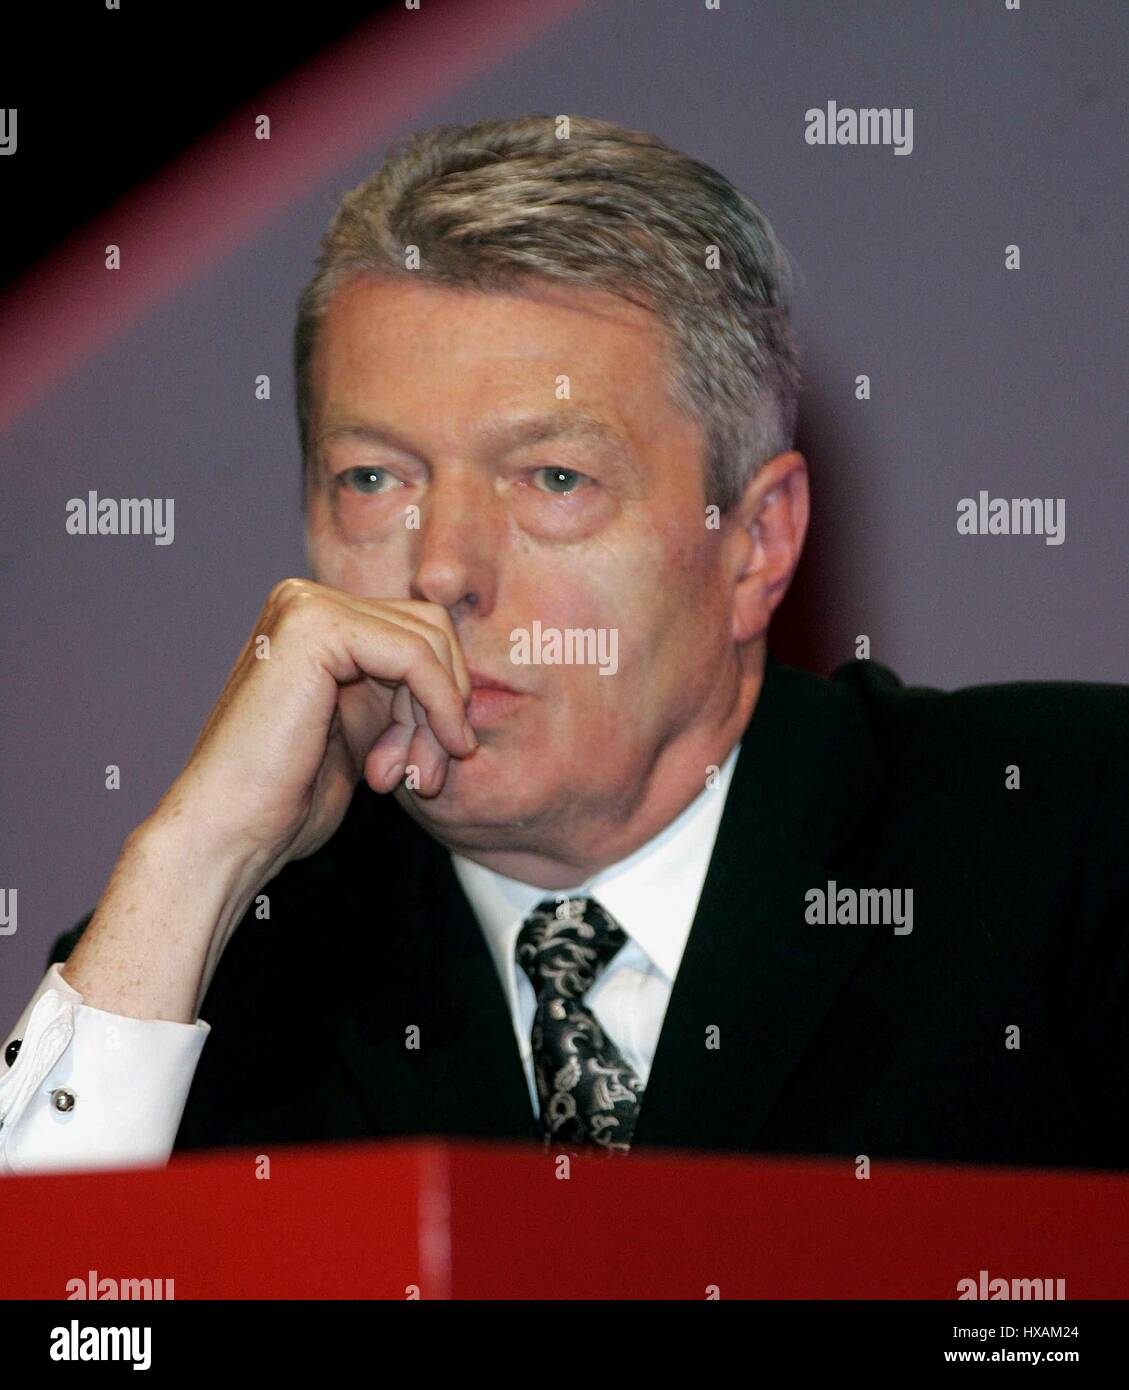 ALAN JOHNSON MP SEC OF STATE FOR EDUCATION 27 September 2006 MANCHESTER ENGLAND - Stock Image